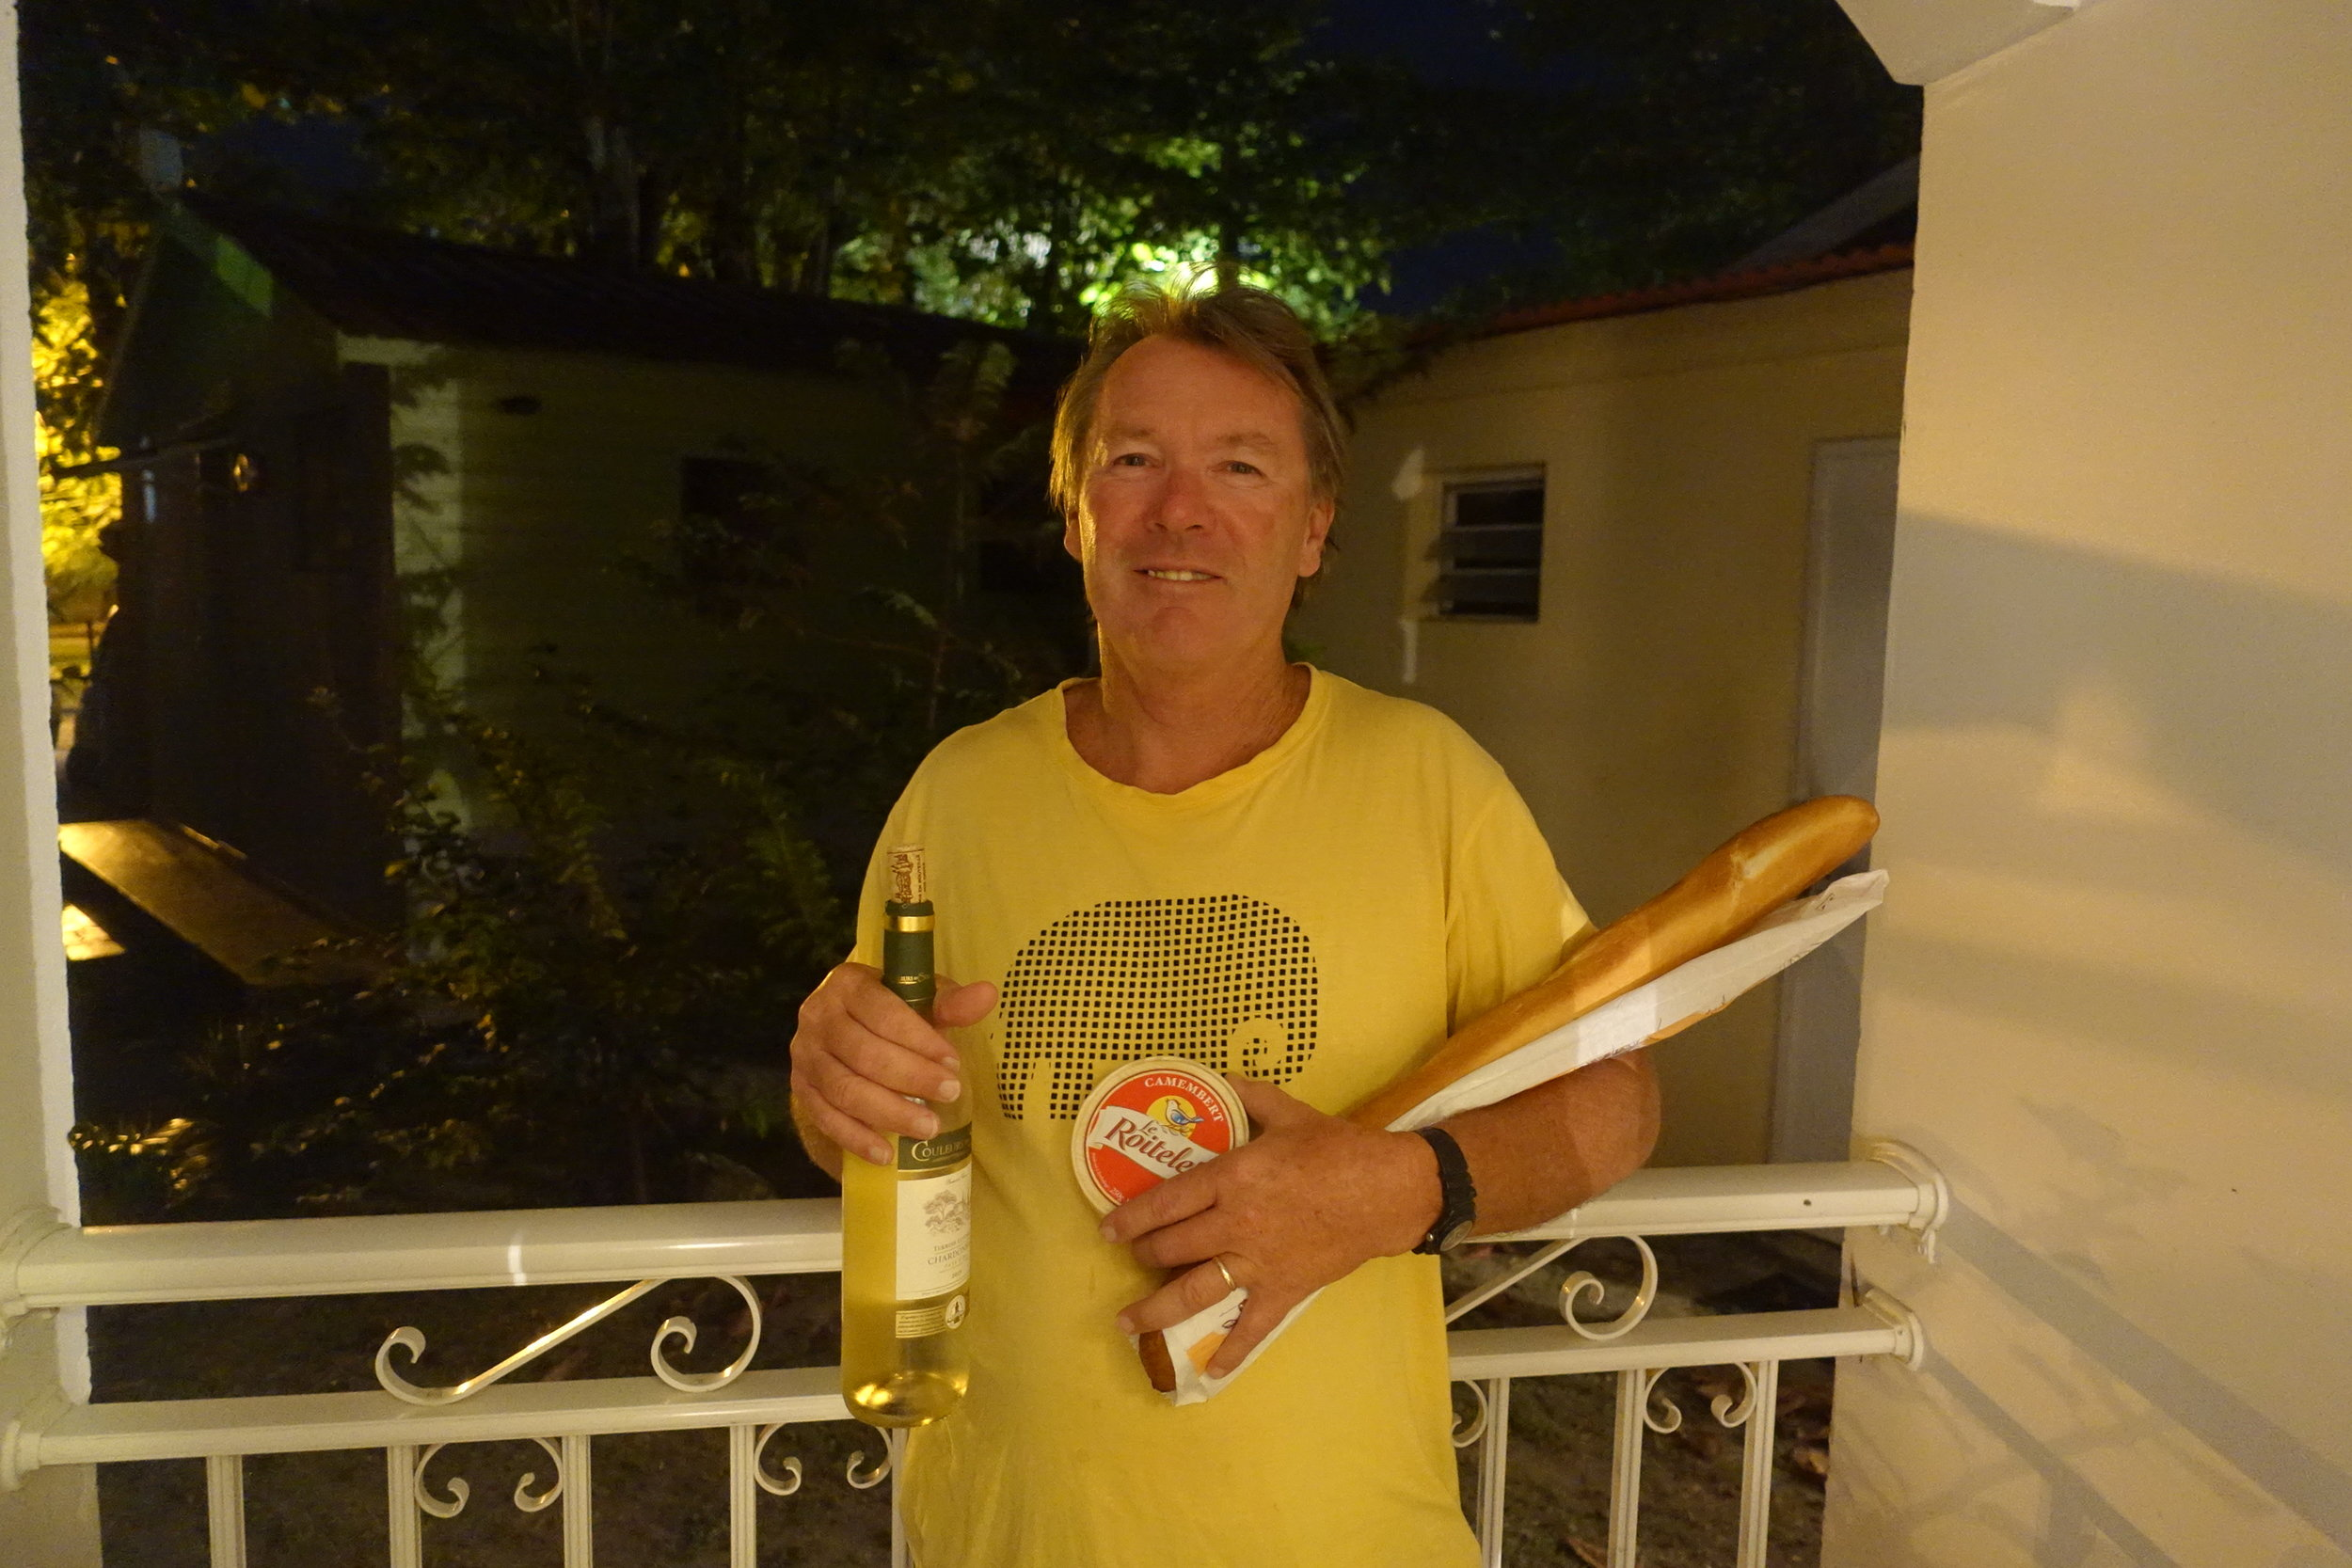 self catering in Martinique and the other French islands means bread, chees and wine.